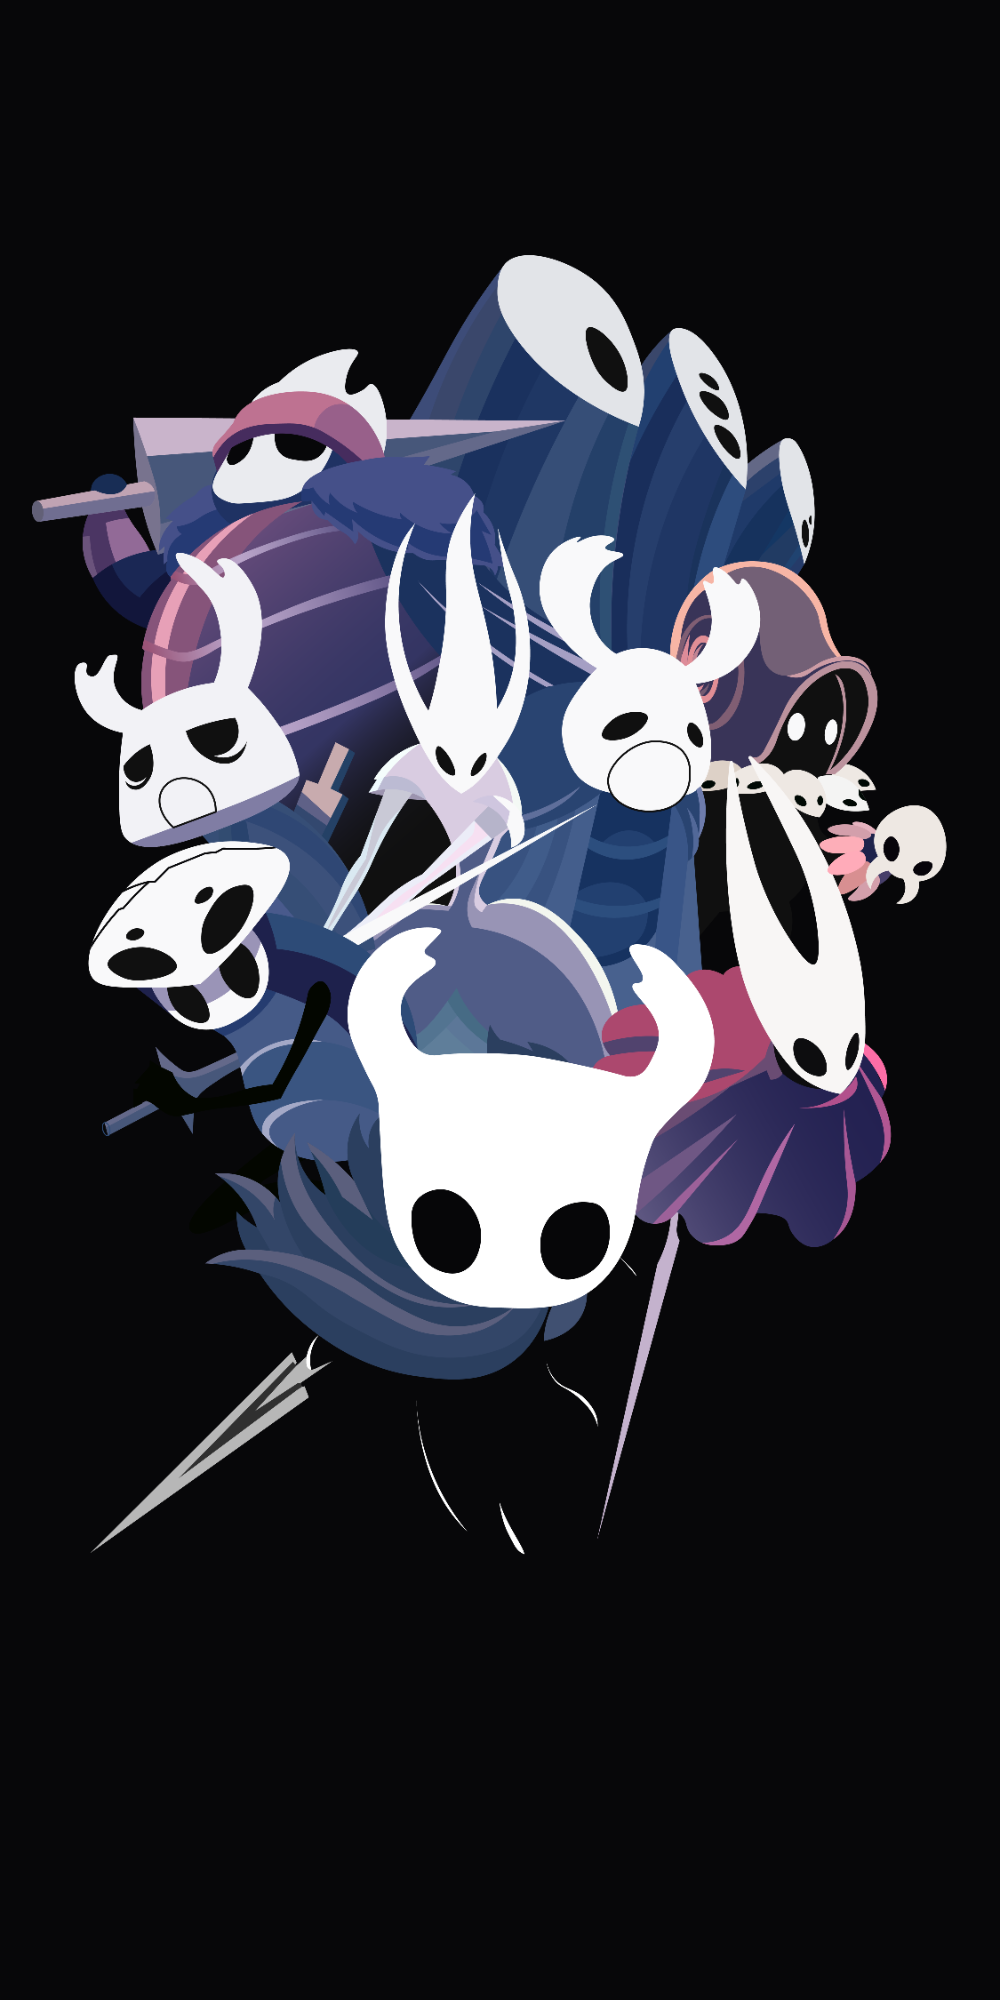 Android Hollow Knight Phone Wallpaper 3d Wallpapers Hollow Art Knight Iphone Wallpaper